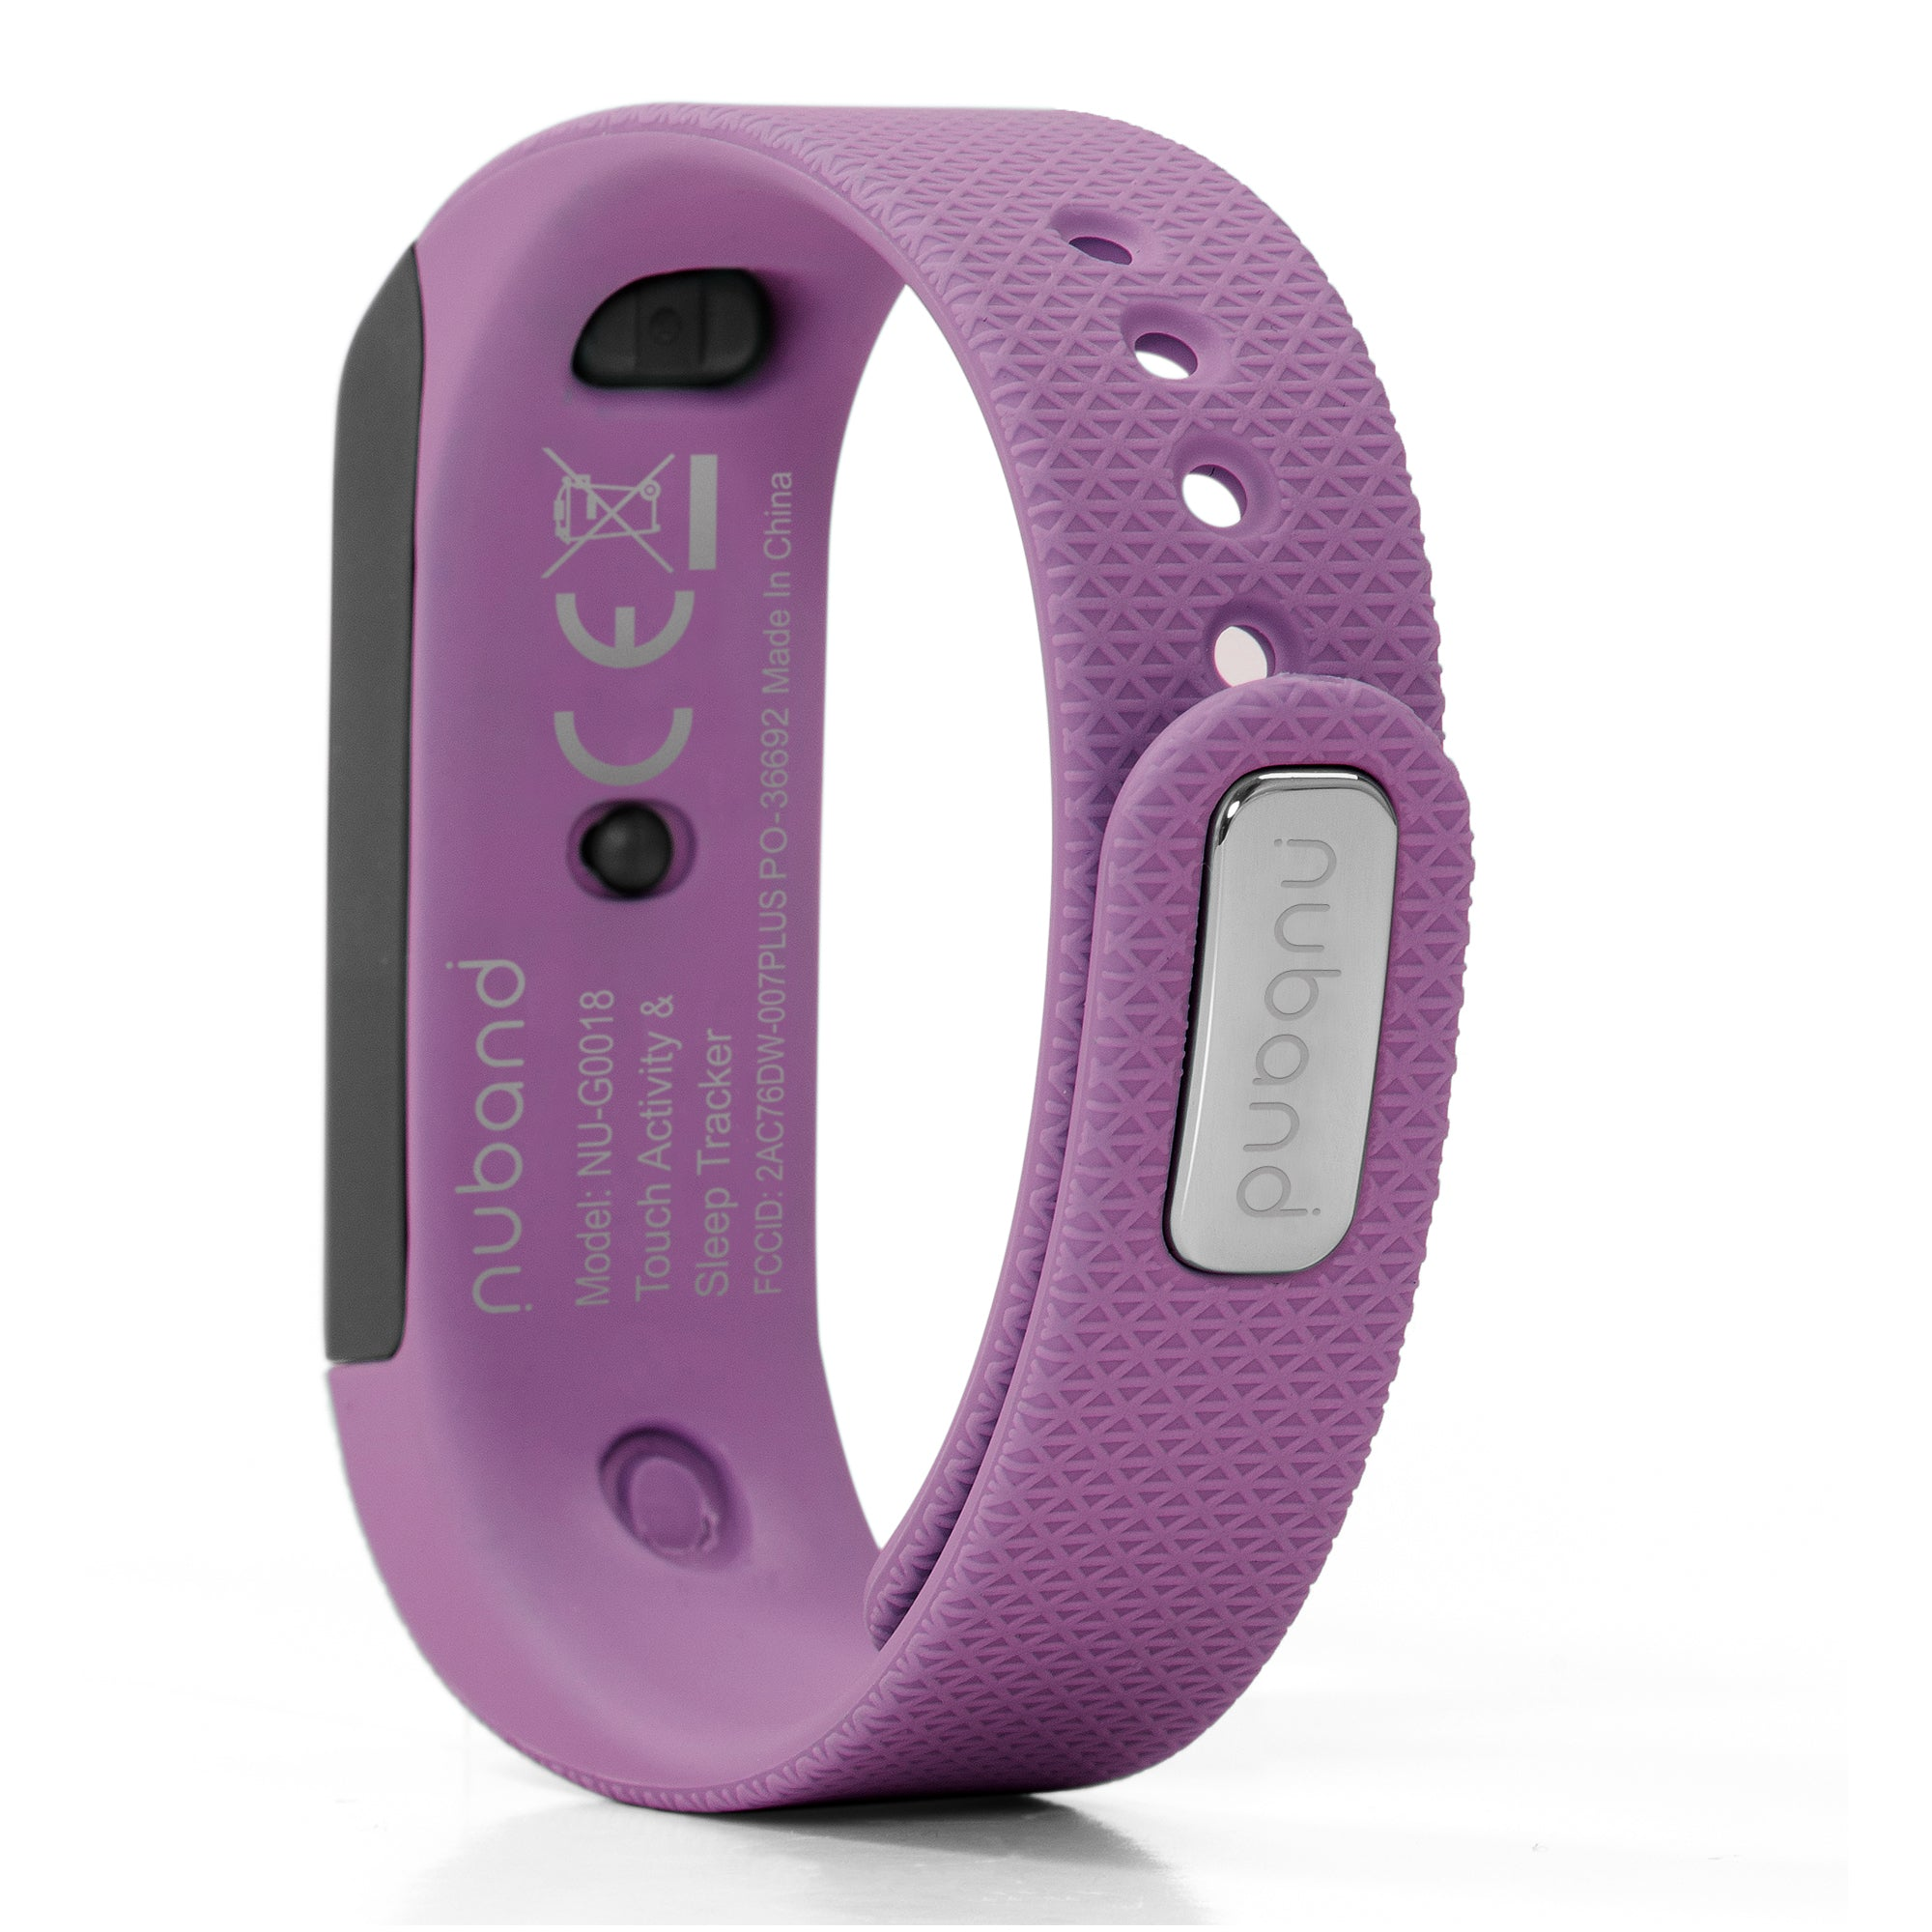 NUBAND i-TOUCH Wireless Activity and Sleep Tracker (Plum)